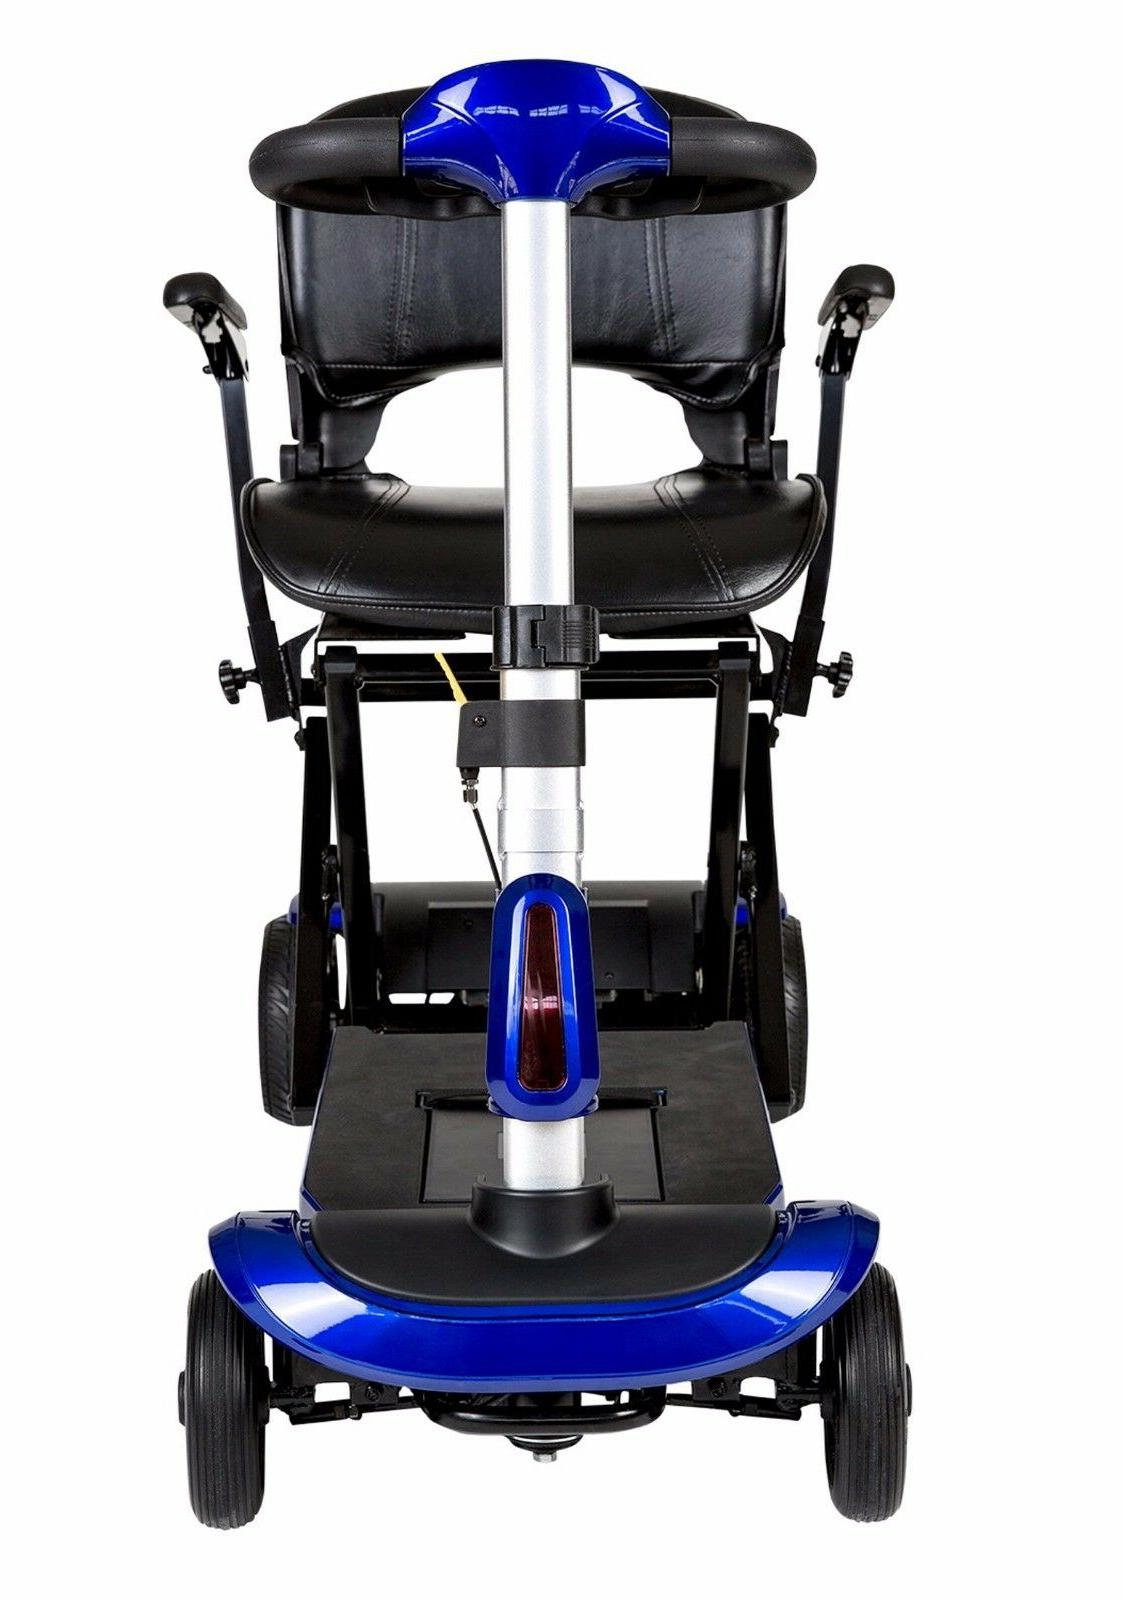 Drive Blue 4 Wheel Mobility Scooter, 300 lb Capacity